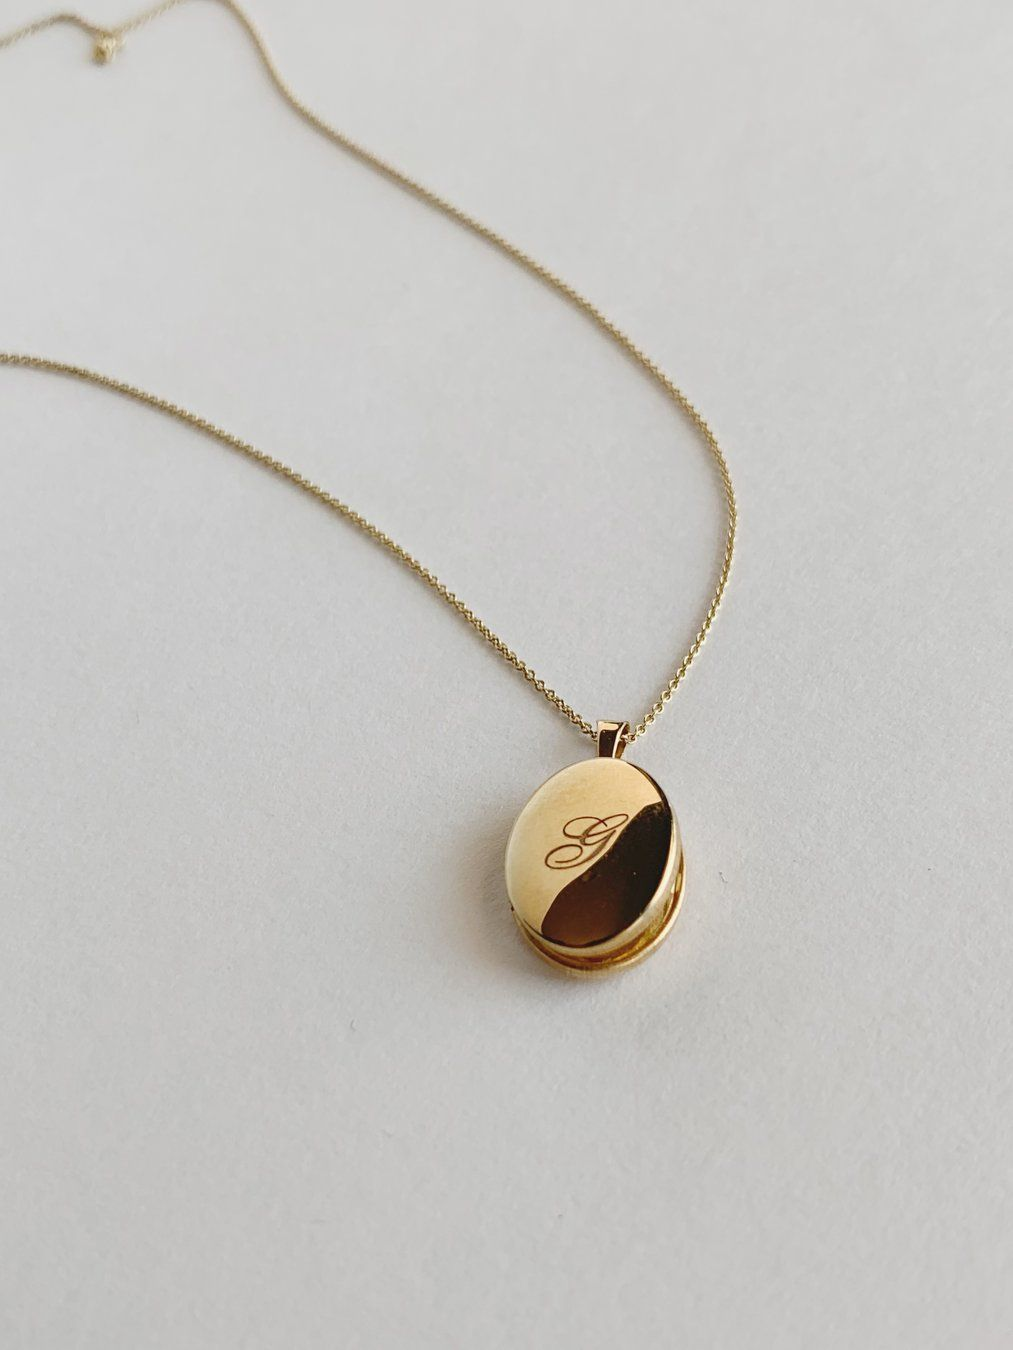 Maison Gold Oval Locket Necklace In 2020 Gold Locket Oval Locket Locket